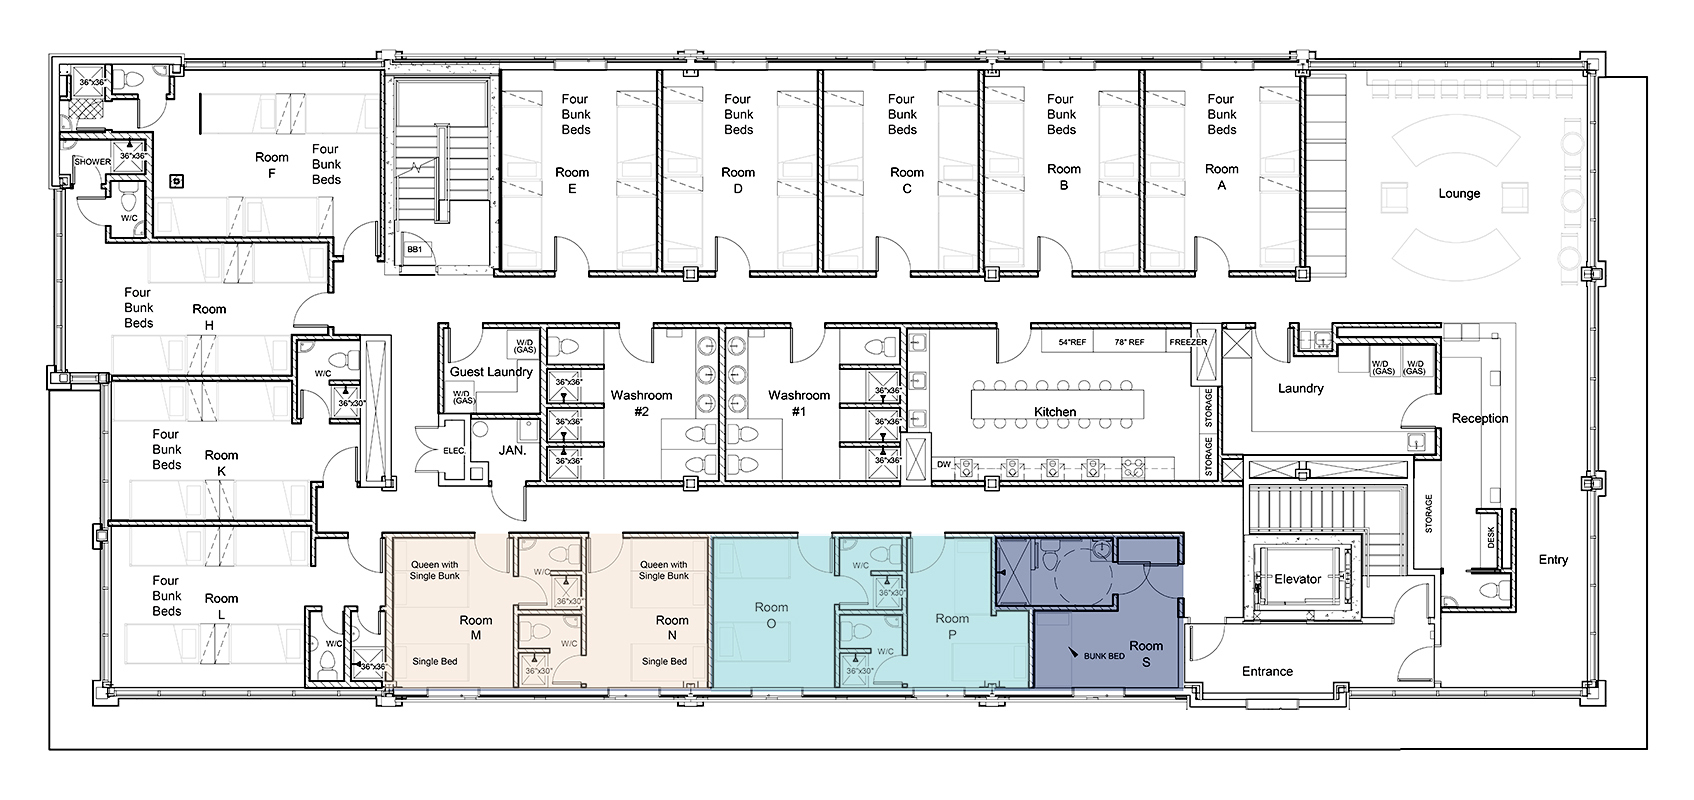 Canmore Downtown Hostel Floor Plan - Private rooms